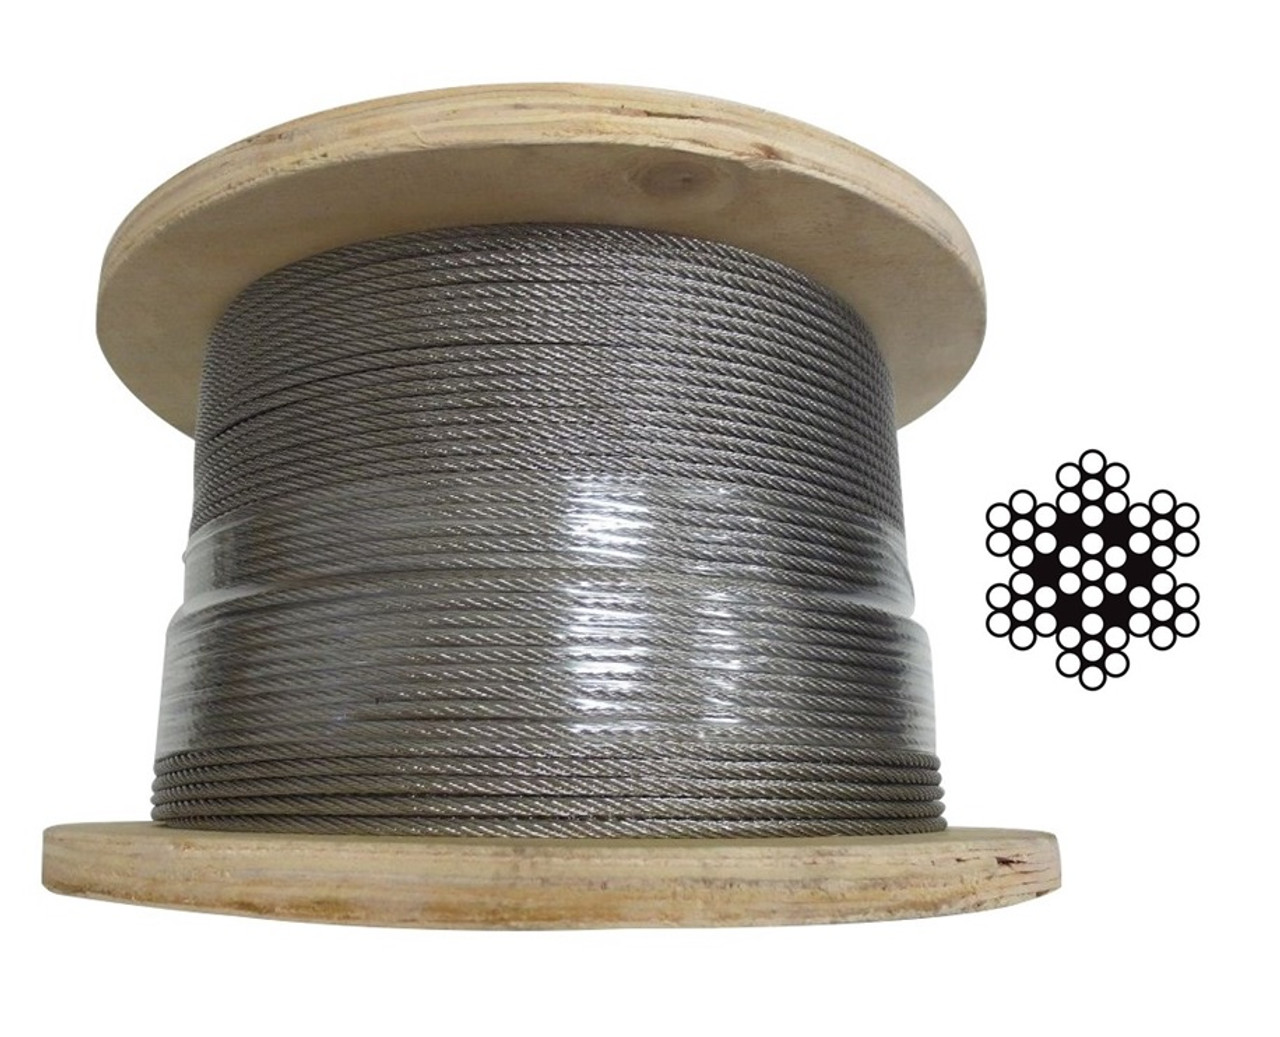 3.2mm Stainless Steel Wire Rope 7 x 7 - 305m roll